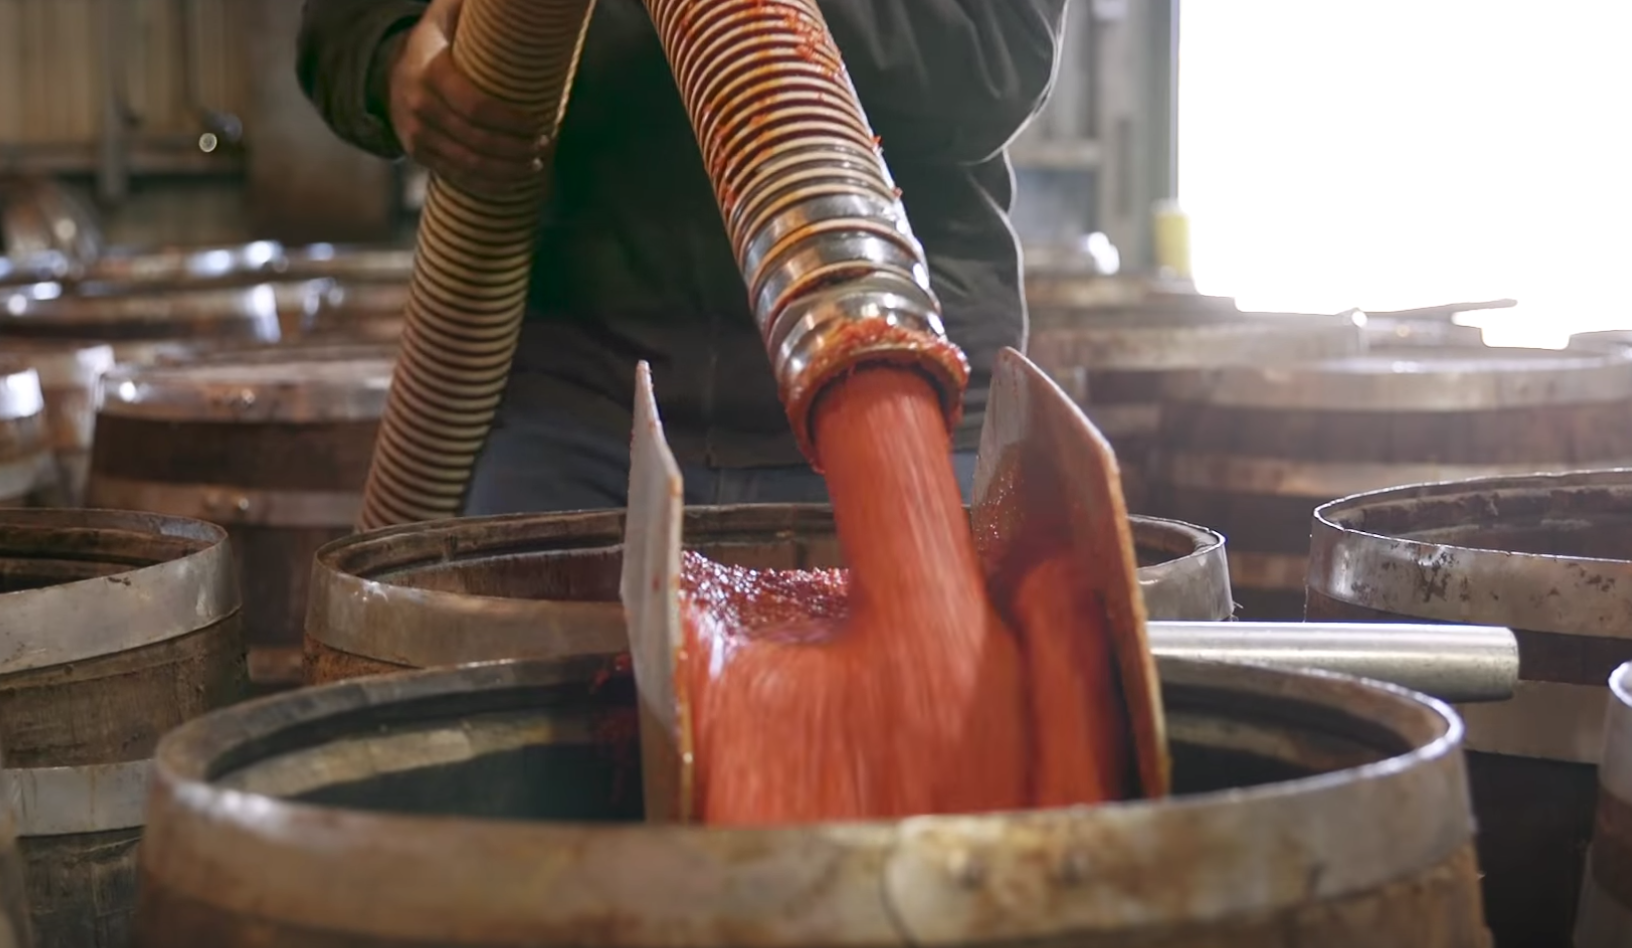 How The Tabasco Factory Churns Out 300,000 Bottles Of Hot Sauce Every Day